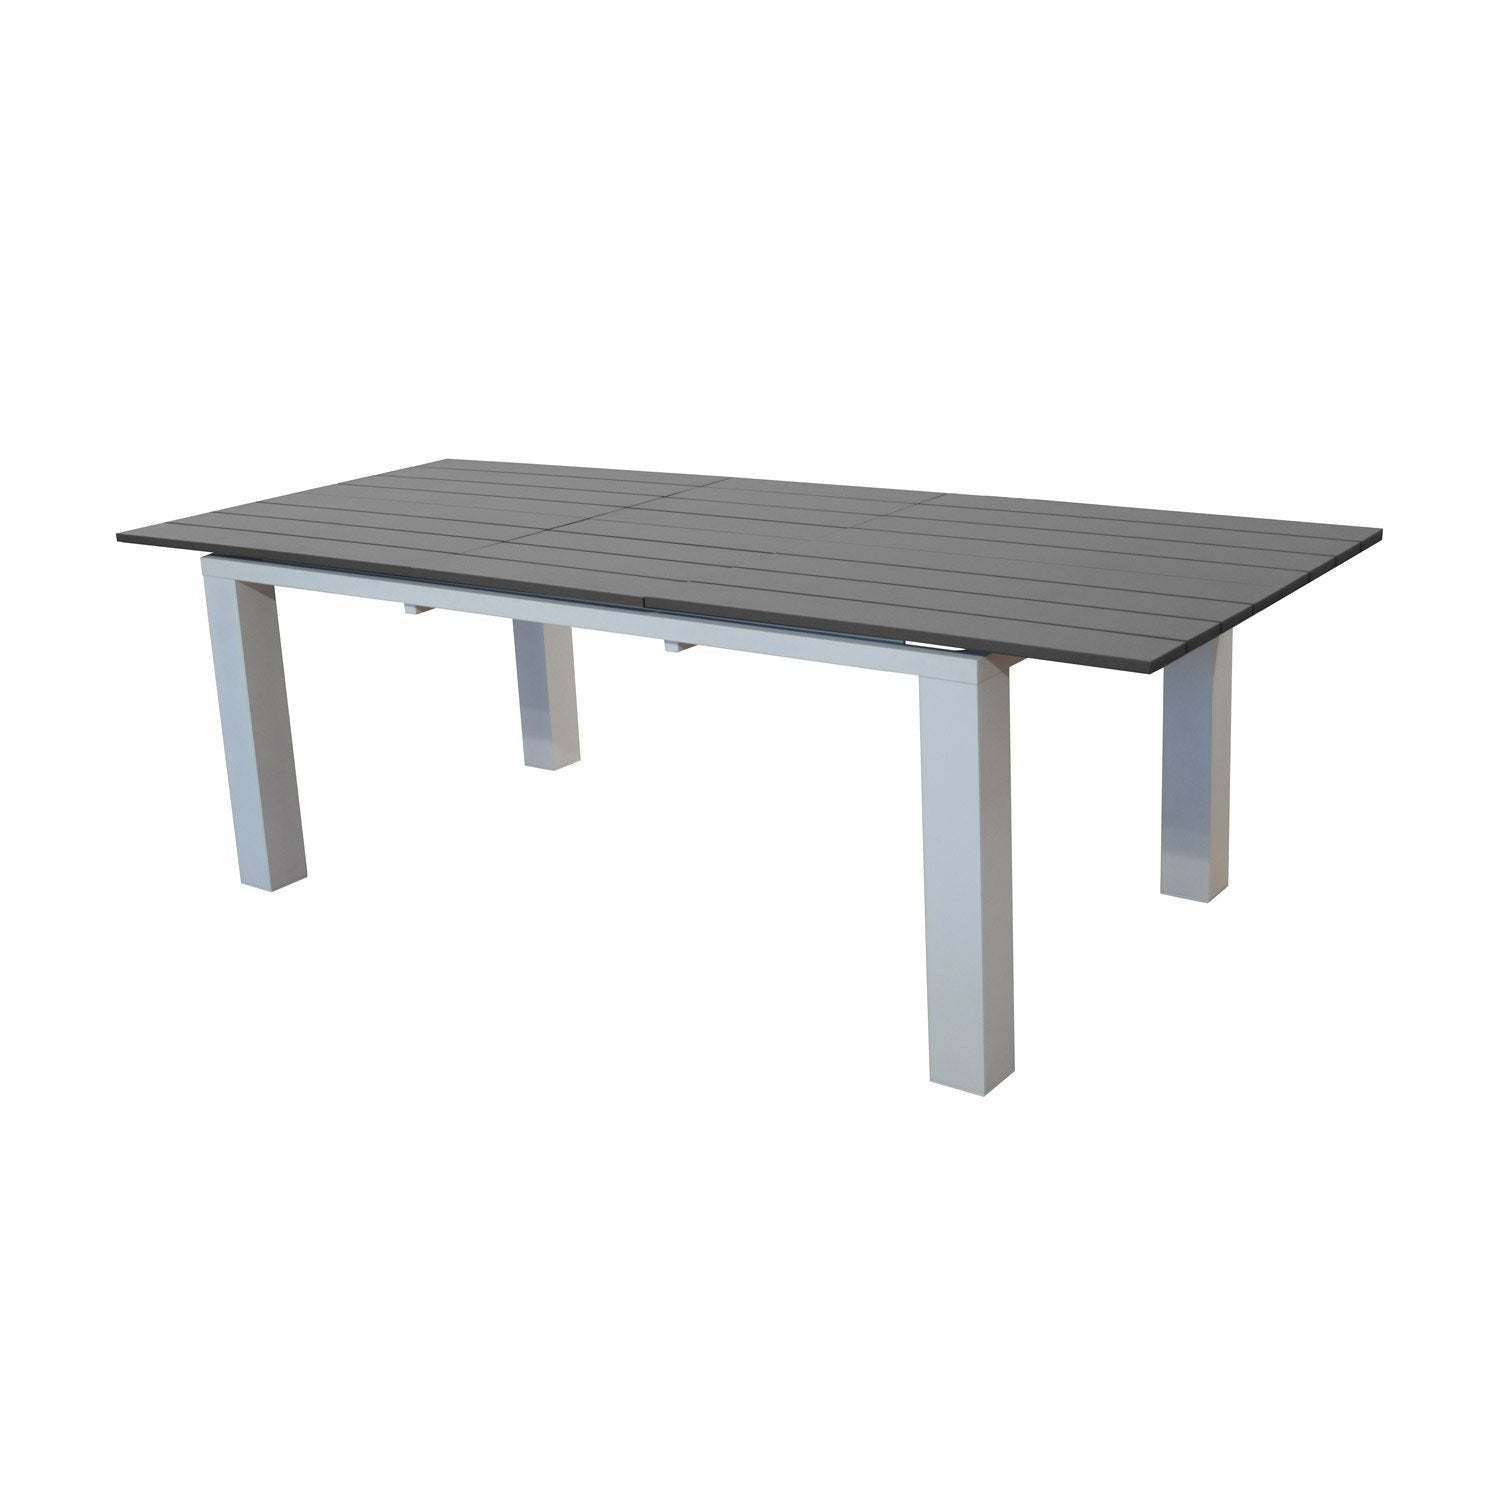 Table de jardin elena rectangulaire blanc grey 8 for Table jardin 8 personnes